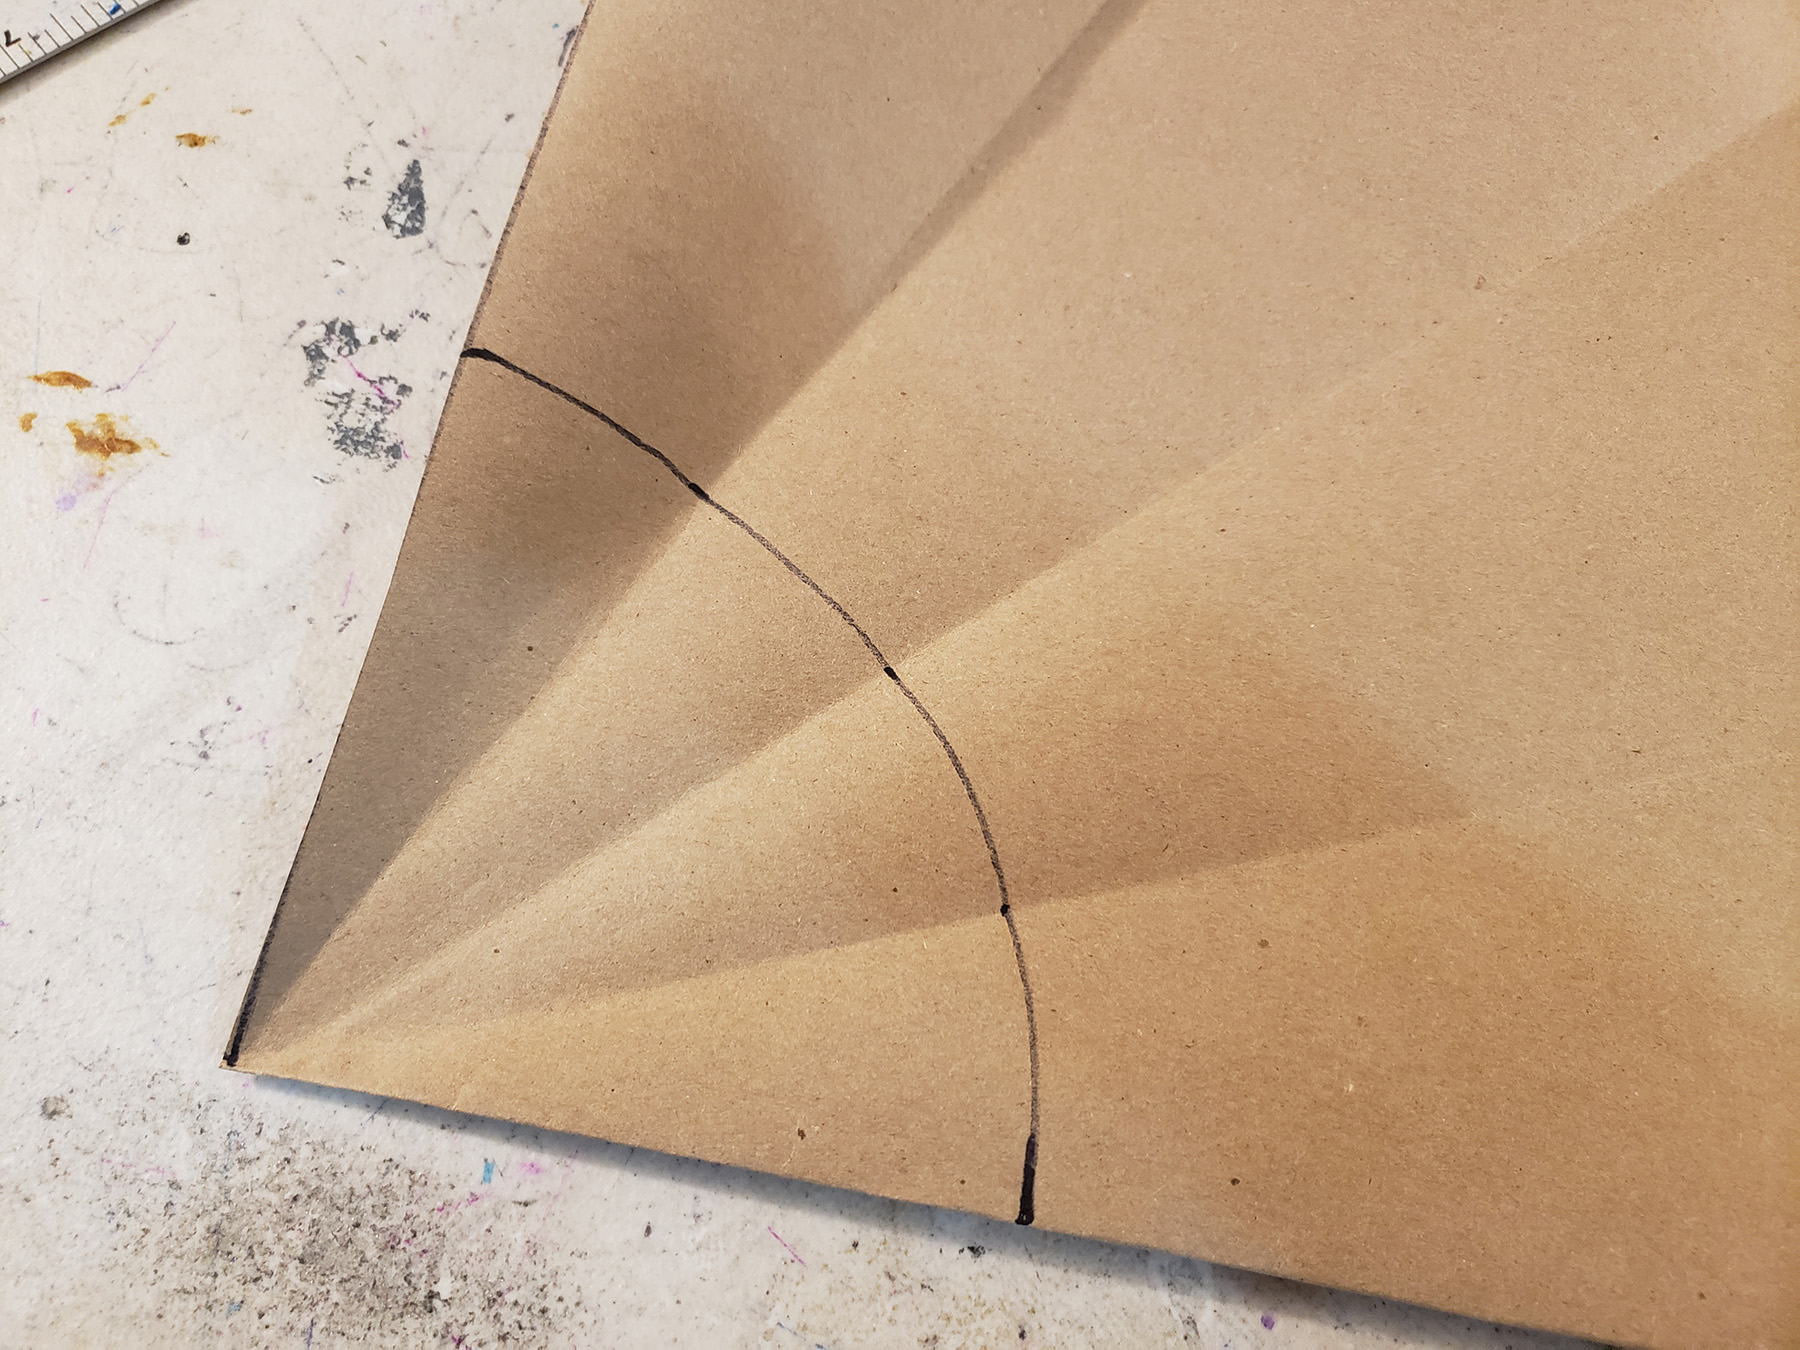 An unfolded piece of brown craft paper has a curve drawn from one side to a side perpendicular to it.